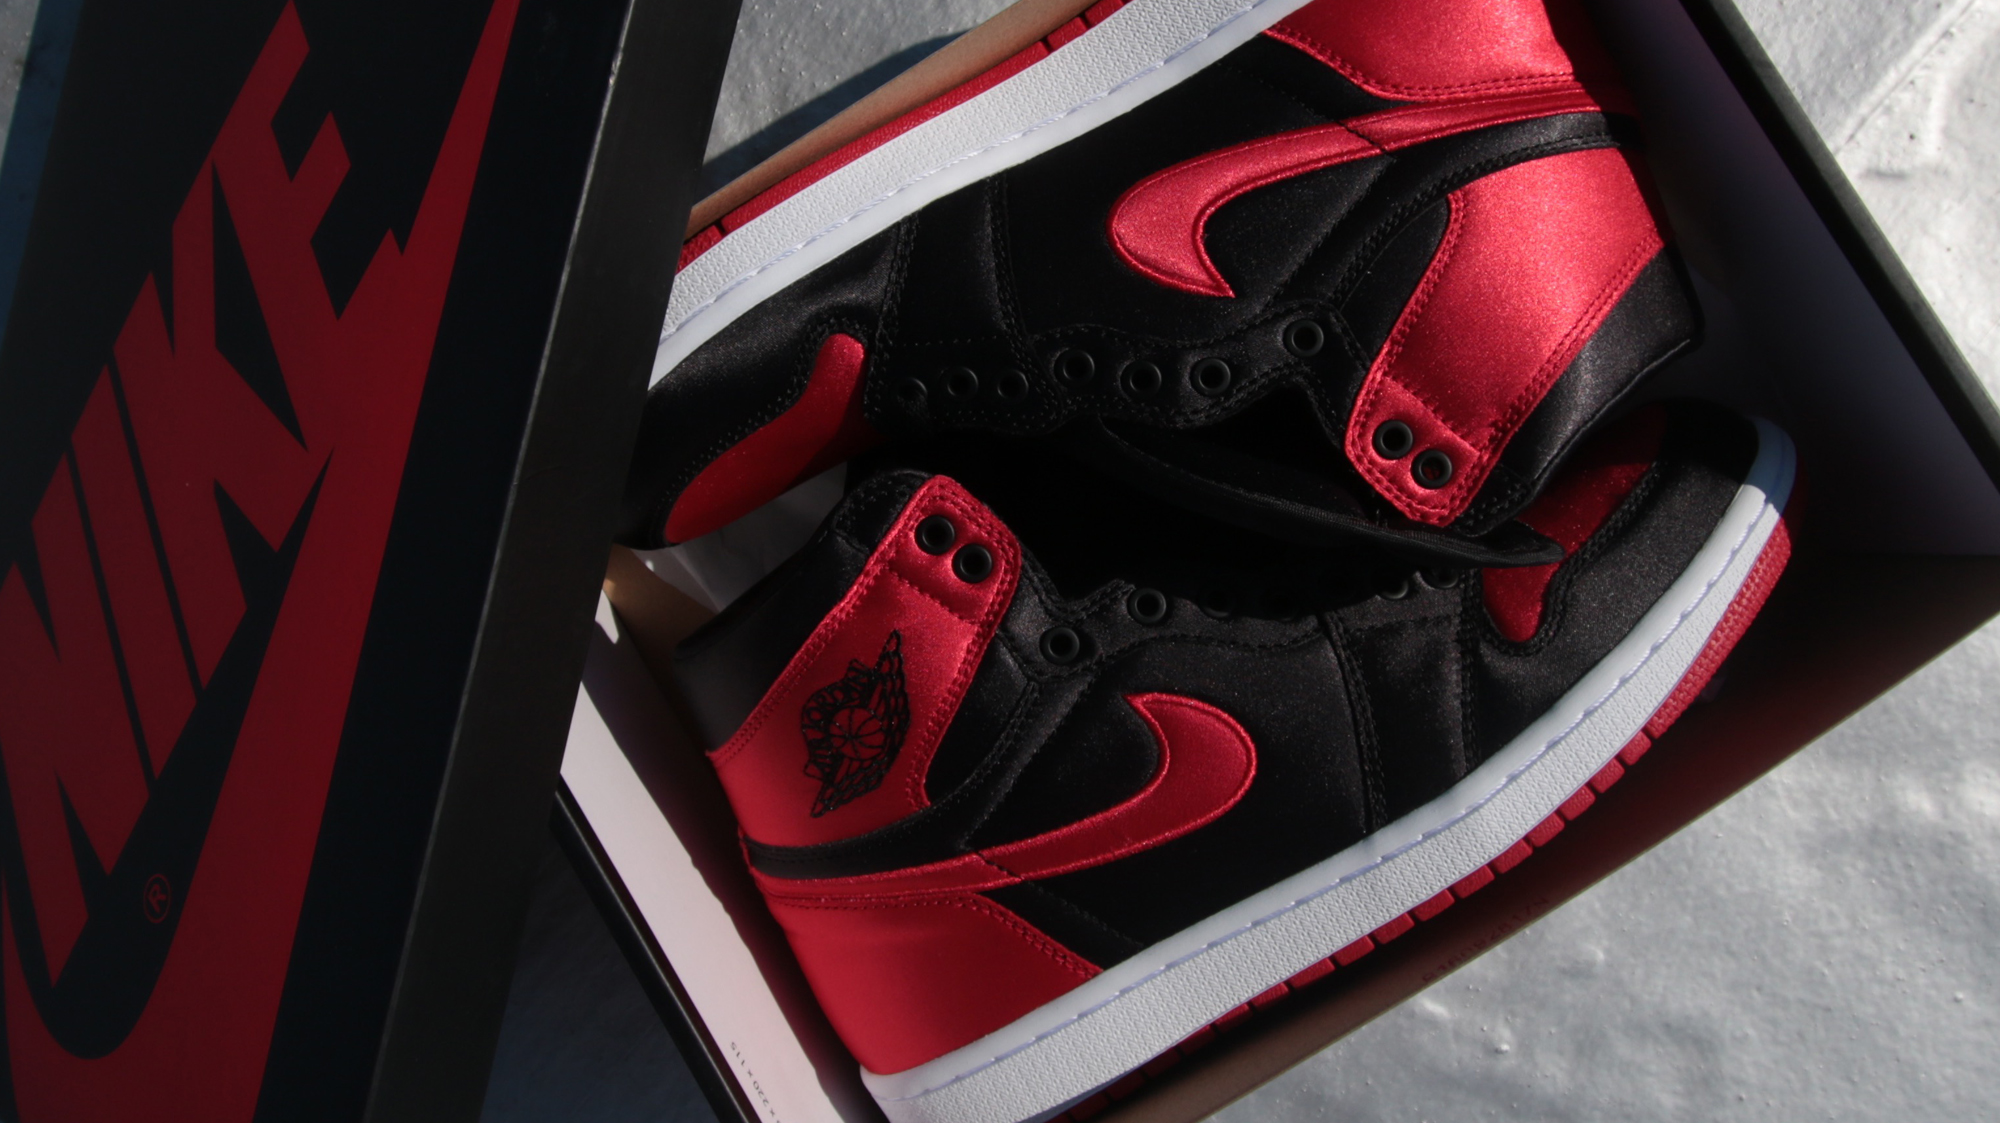 cb7dbc2bf66 For some odd purpose, retailer of fakes do not inventory USA measurement 9  or 13. The classical vamp of the aj 1 with the perforations design ...